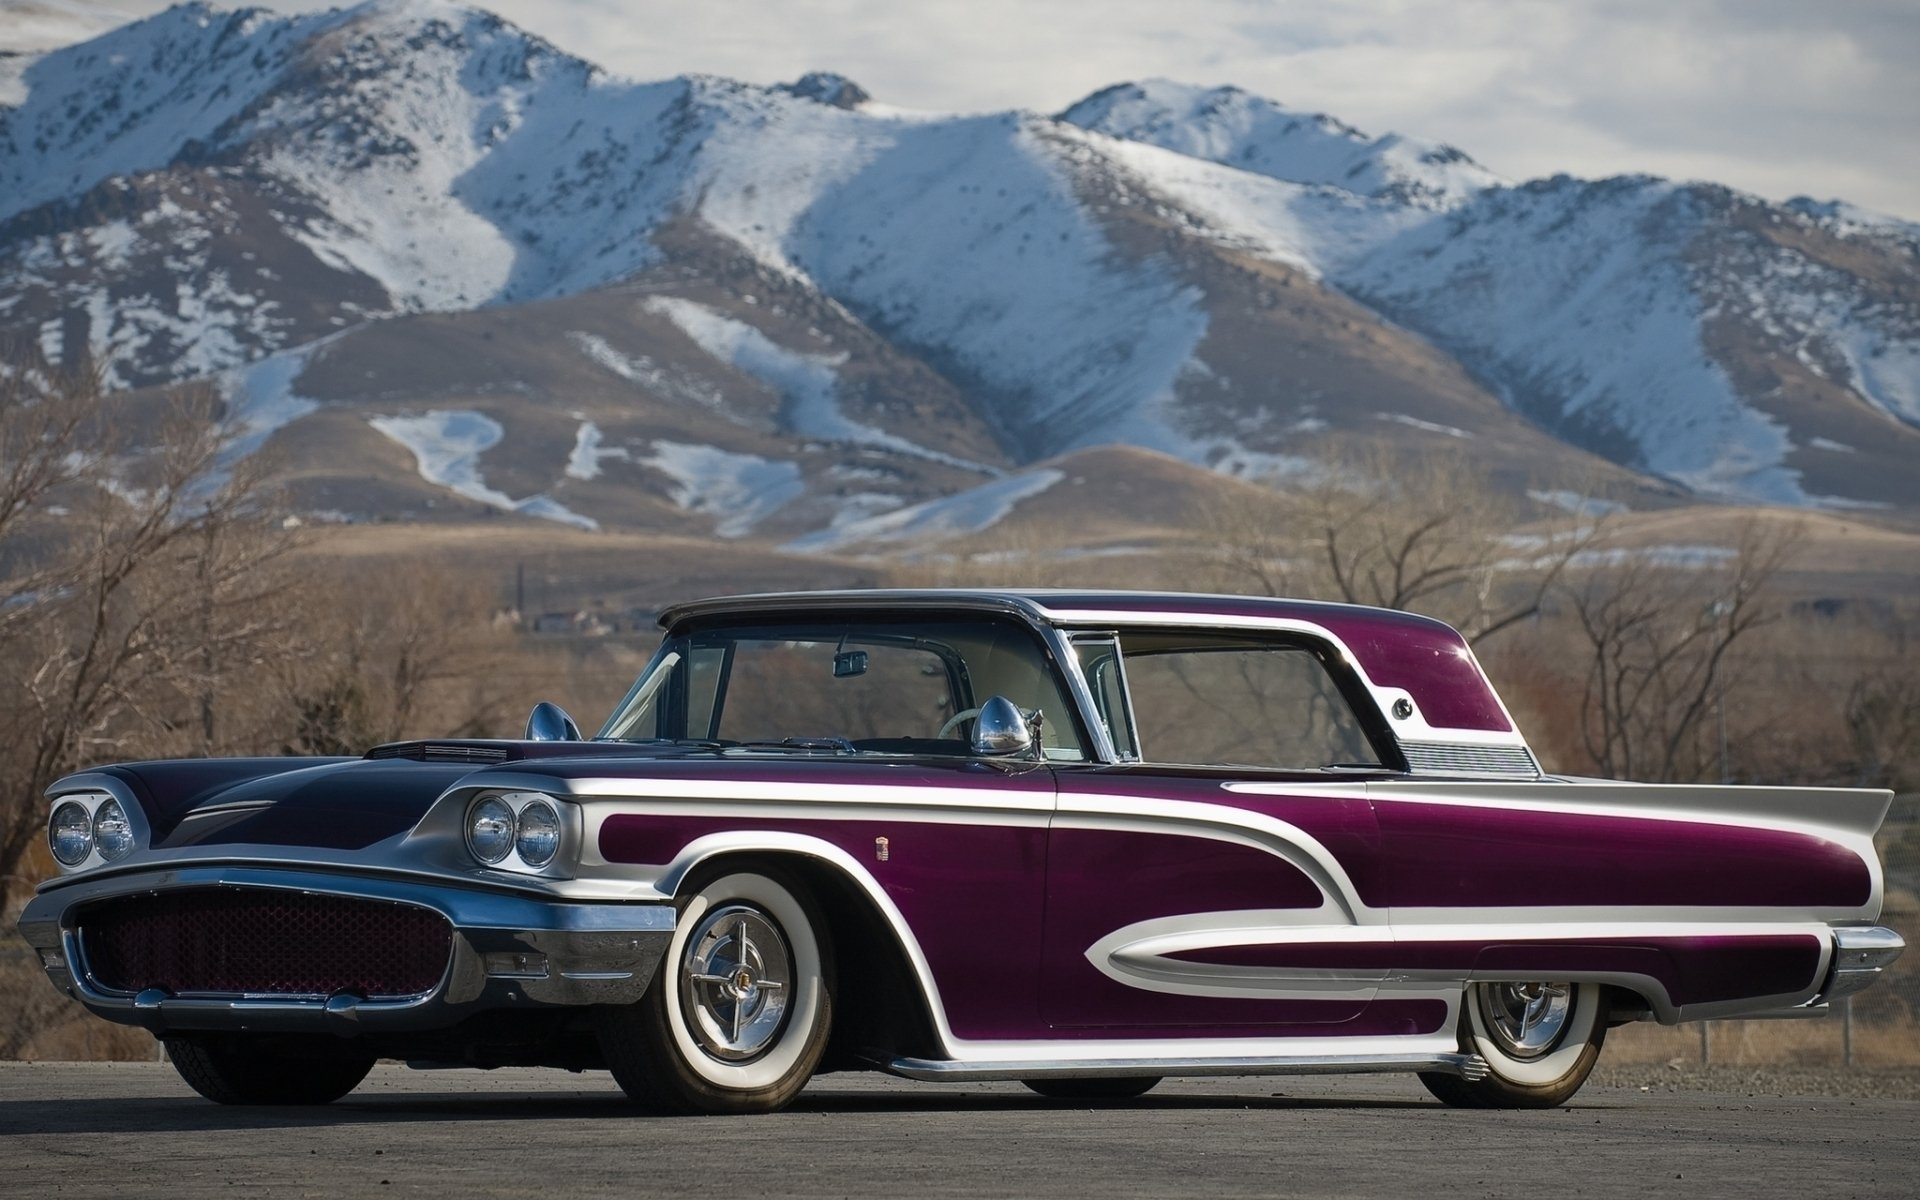 Classic Muscle Car Wallpapers Hd 1680x1050 Ford Thunderbird 1958 Full Hd Wallpaper And Background